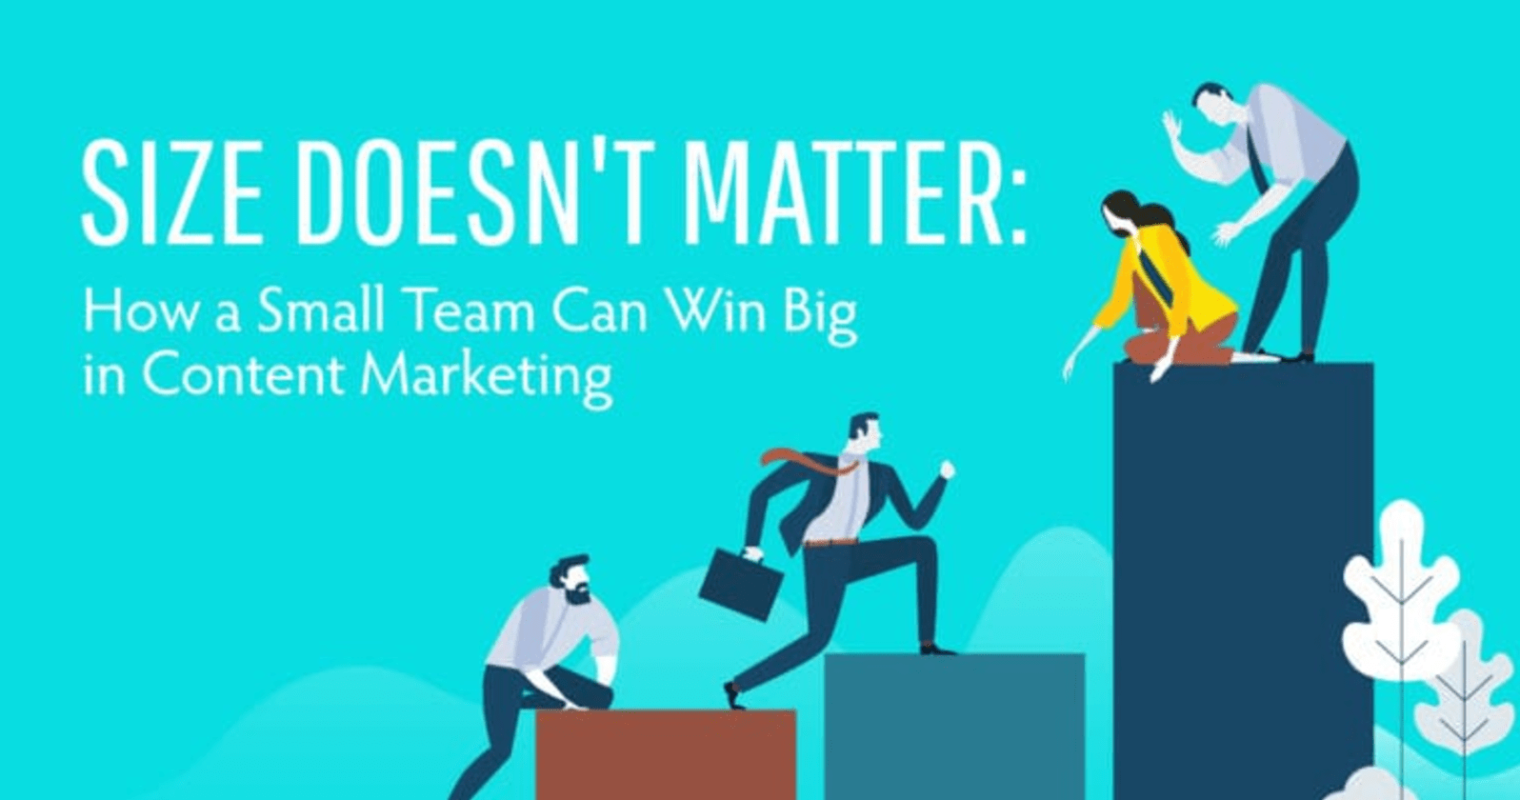 Size Doesn't Matter: How a Small Team Can Win Big in Content Marketing